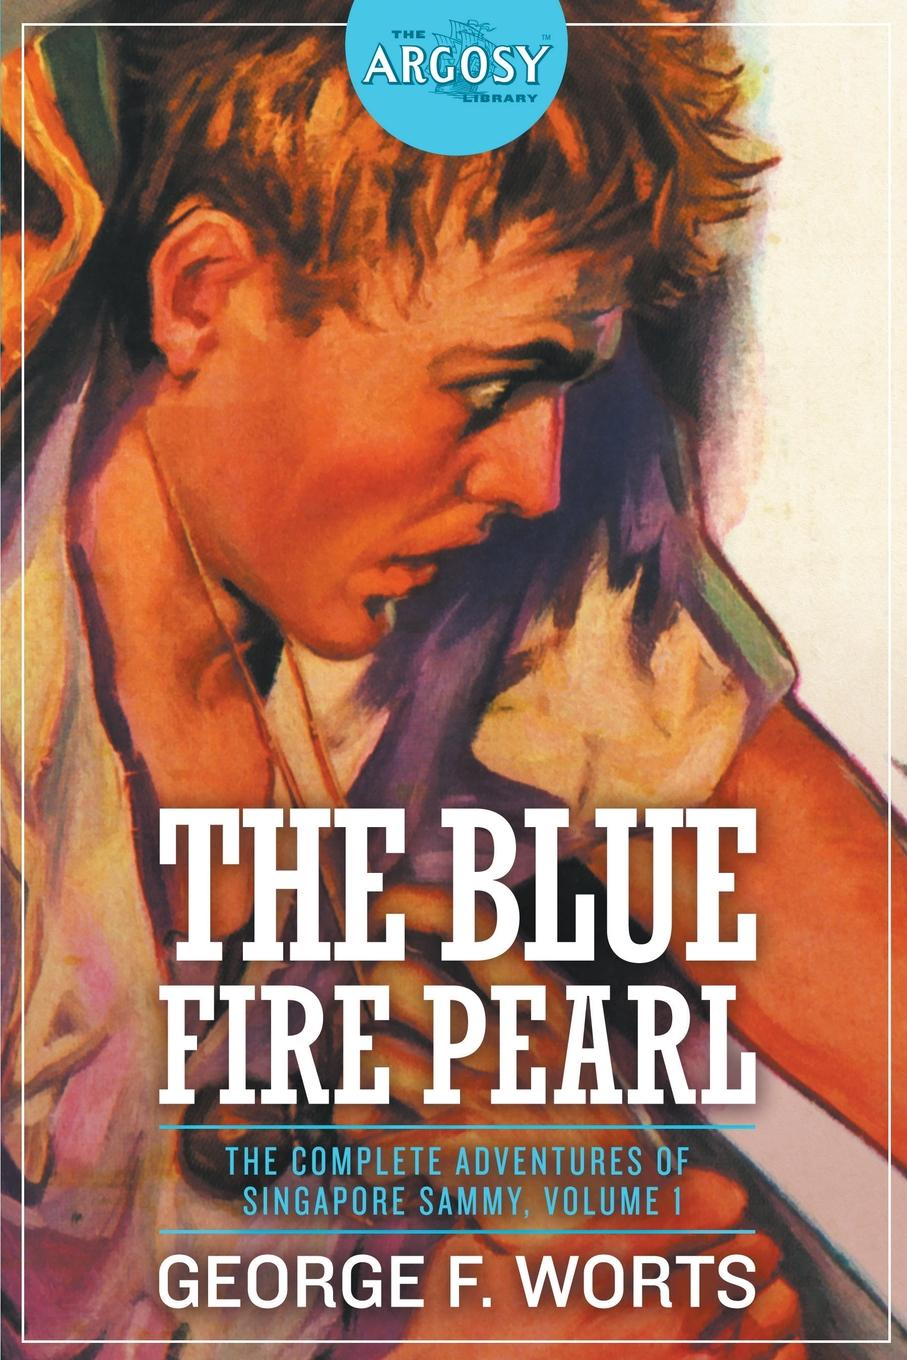 George F. Worts The Blue Fire Pearl - The Complete Adventures of Singapore Sammy, Volume 1